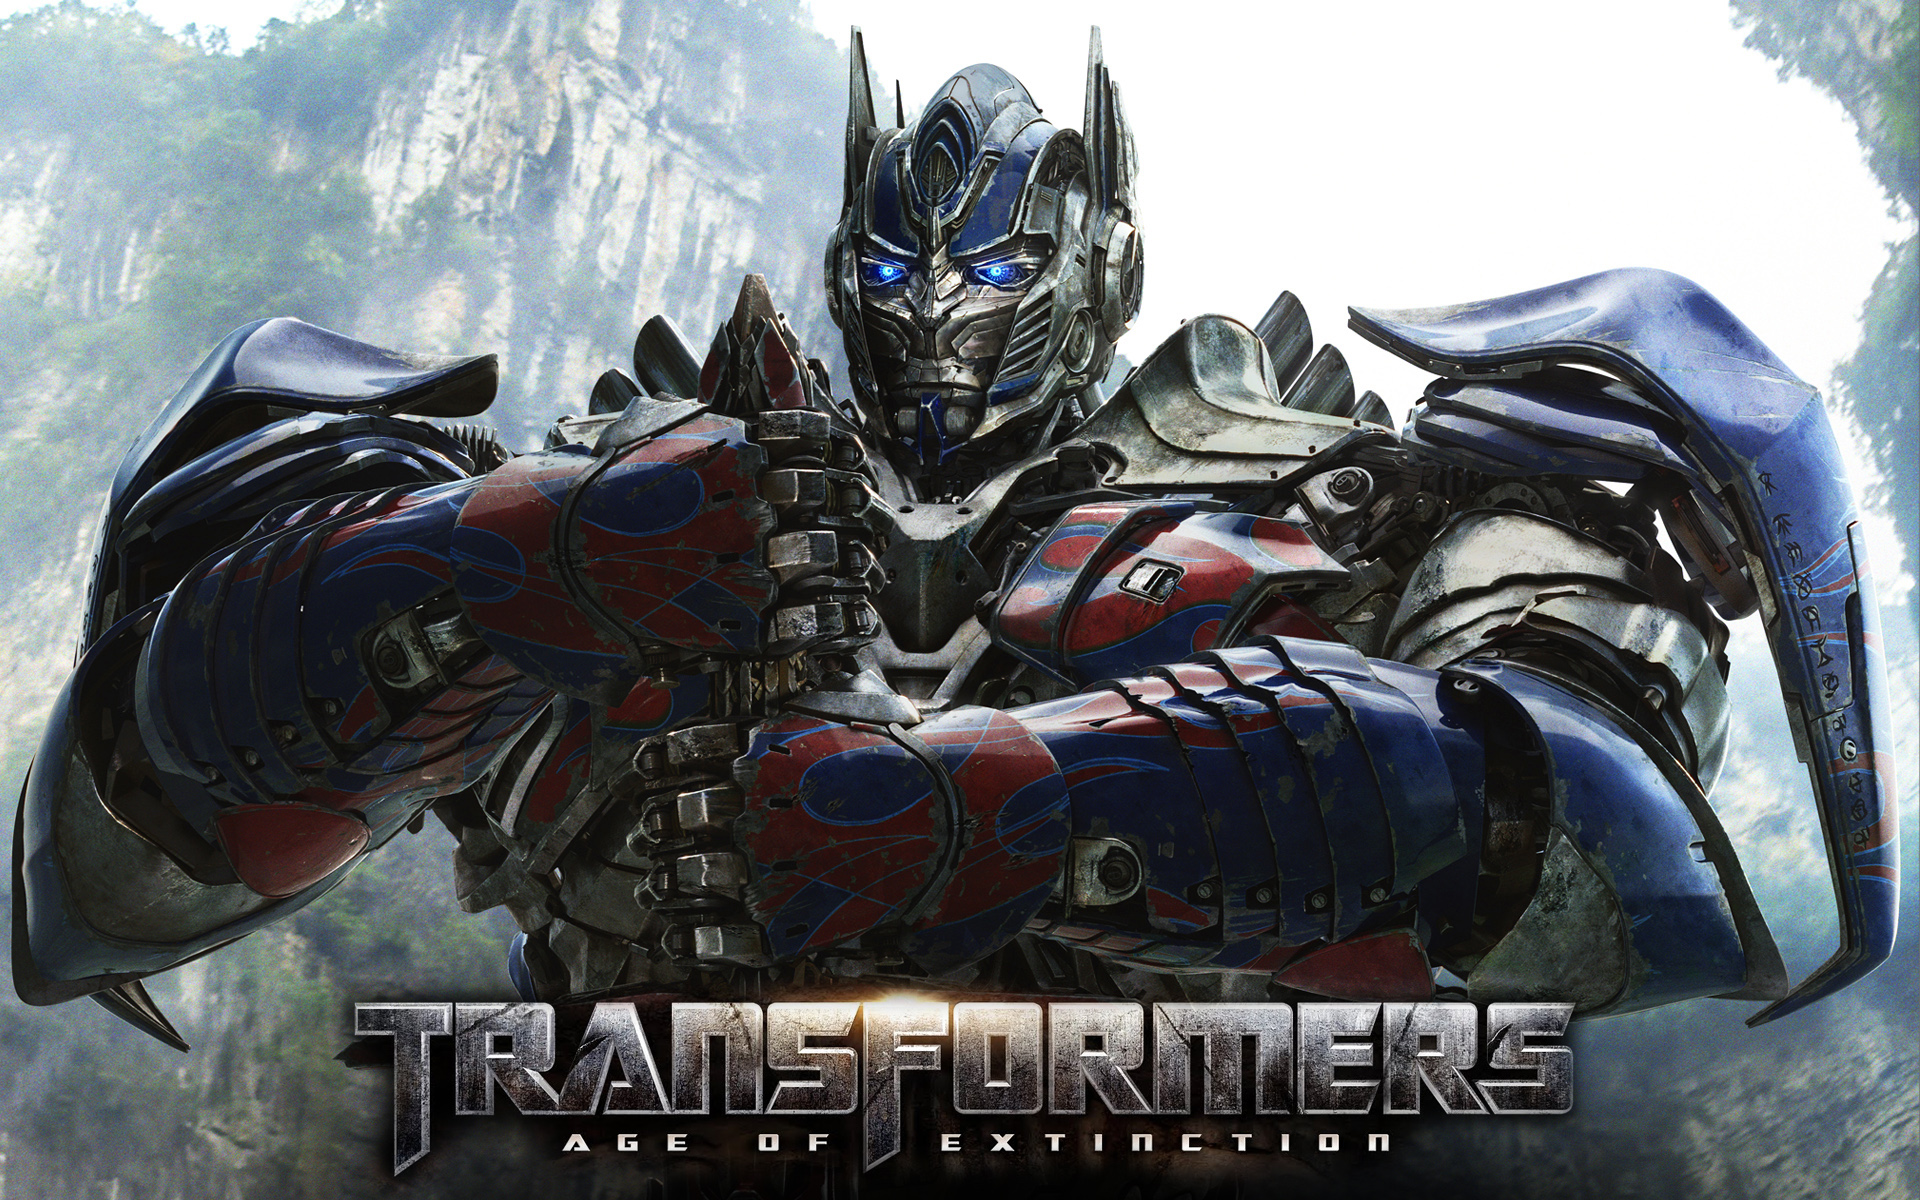 Transformers Age Of Extinction (2014) – [විනාශයක් අභියස…] Trailer with SInhala sub…